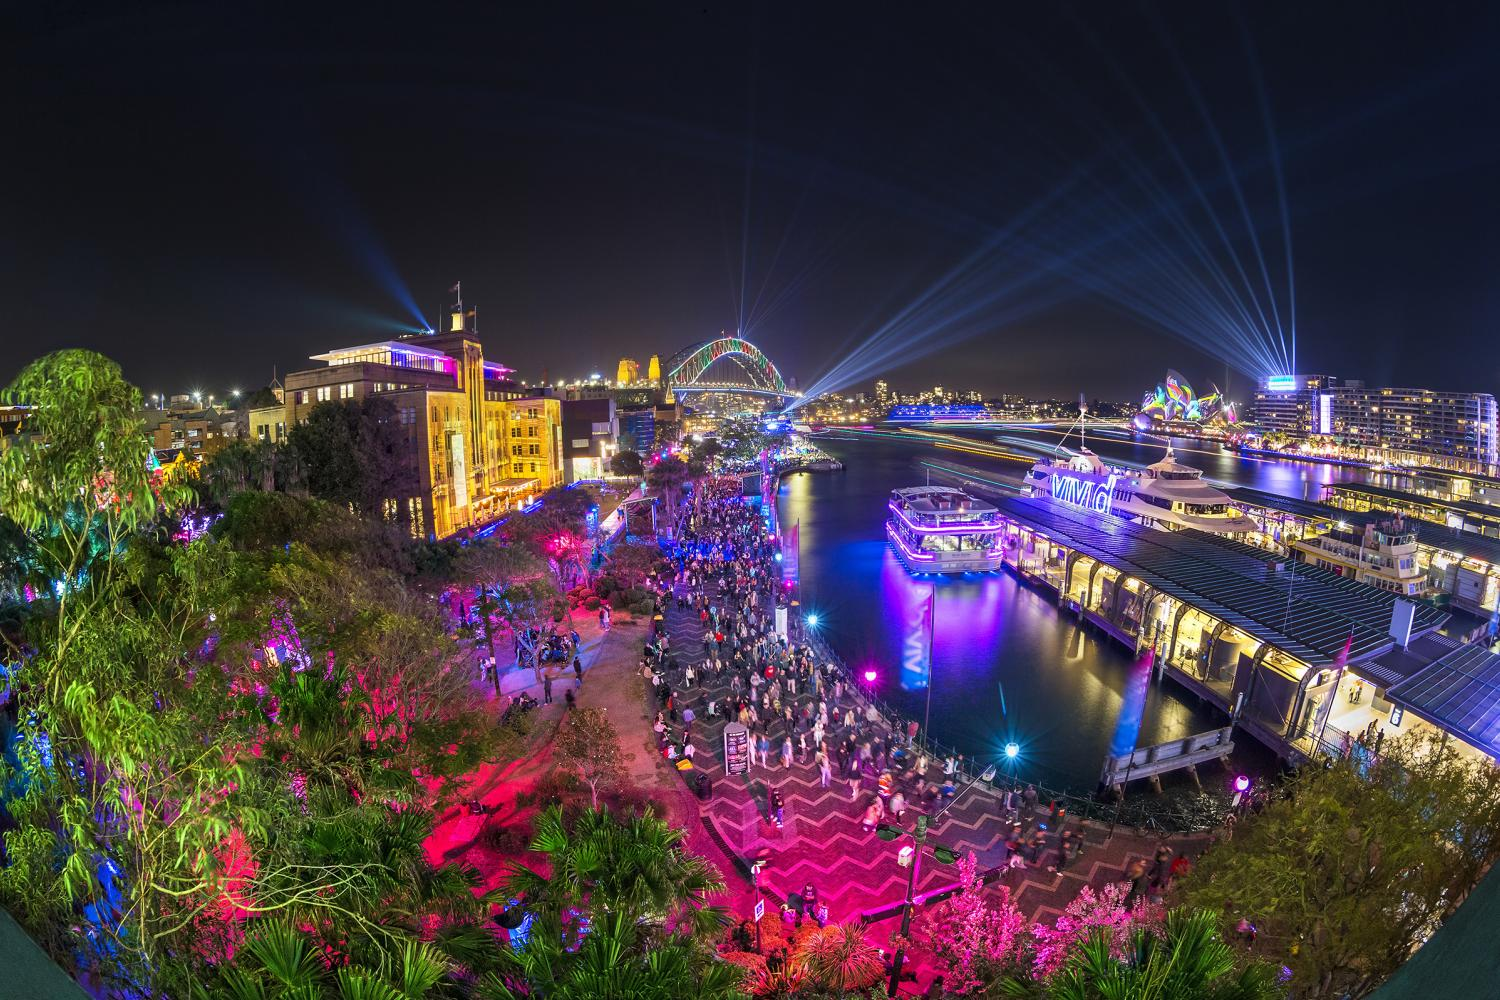 Crowds enjoying the Vivid Sydney 2018 festival along the Sydney Harbour foreshore